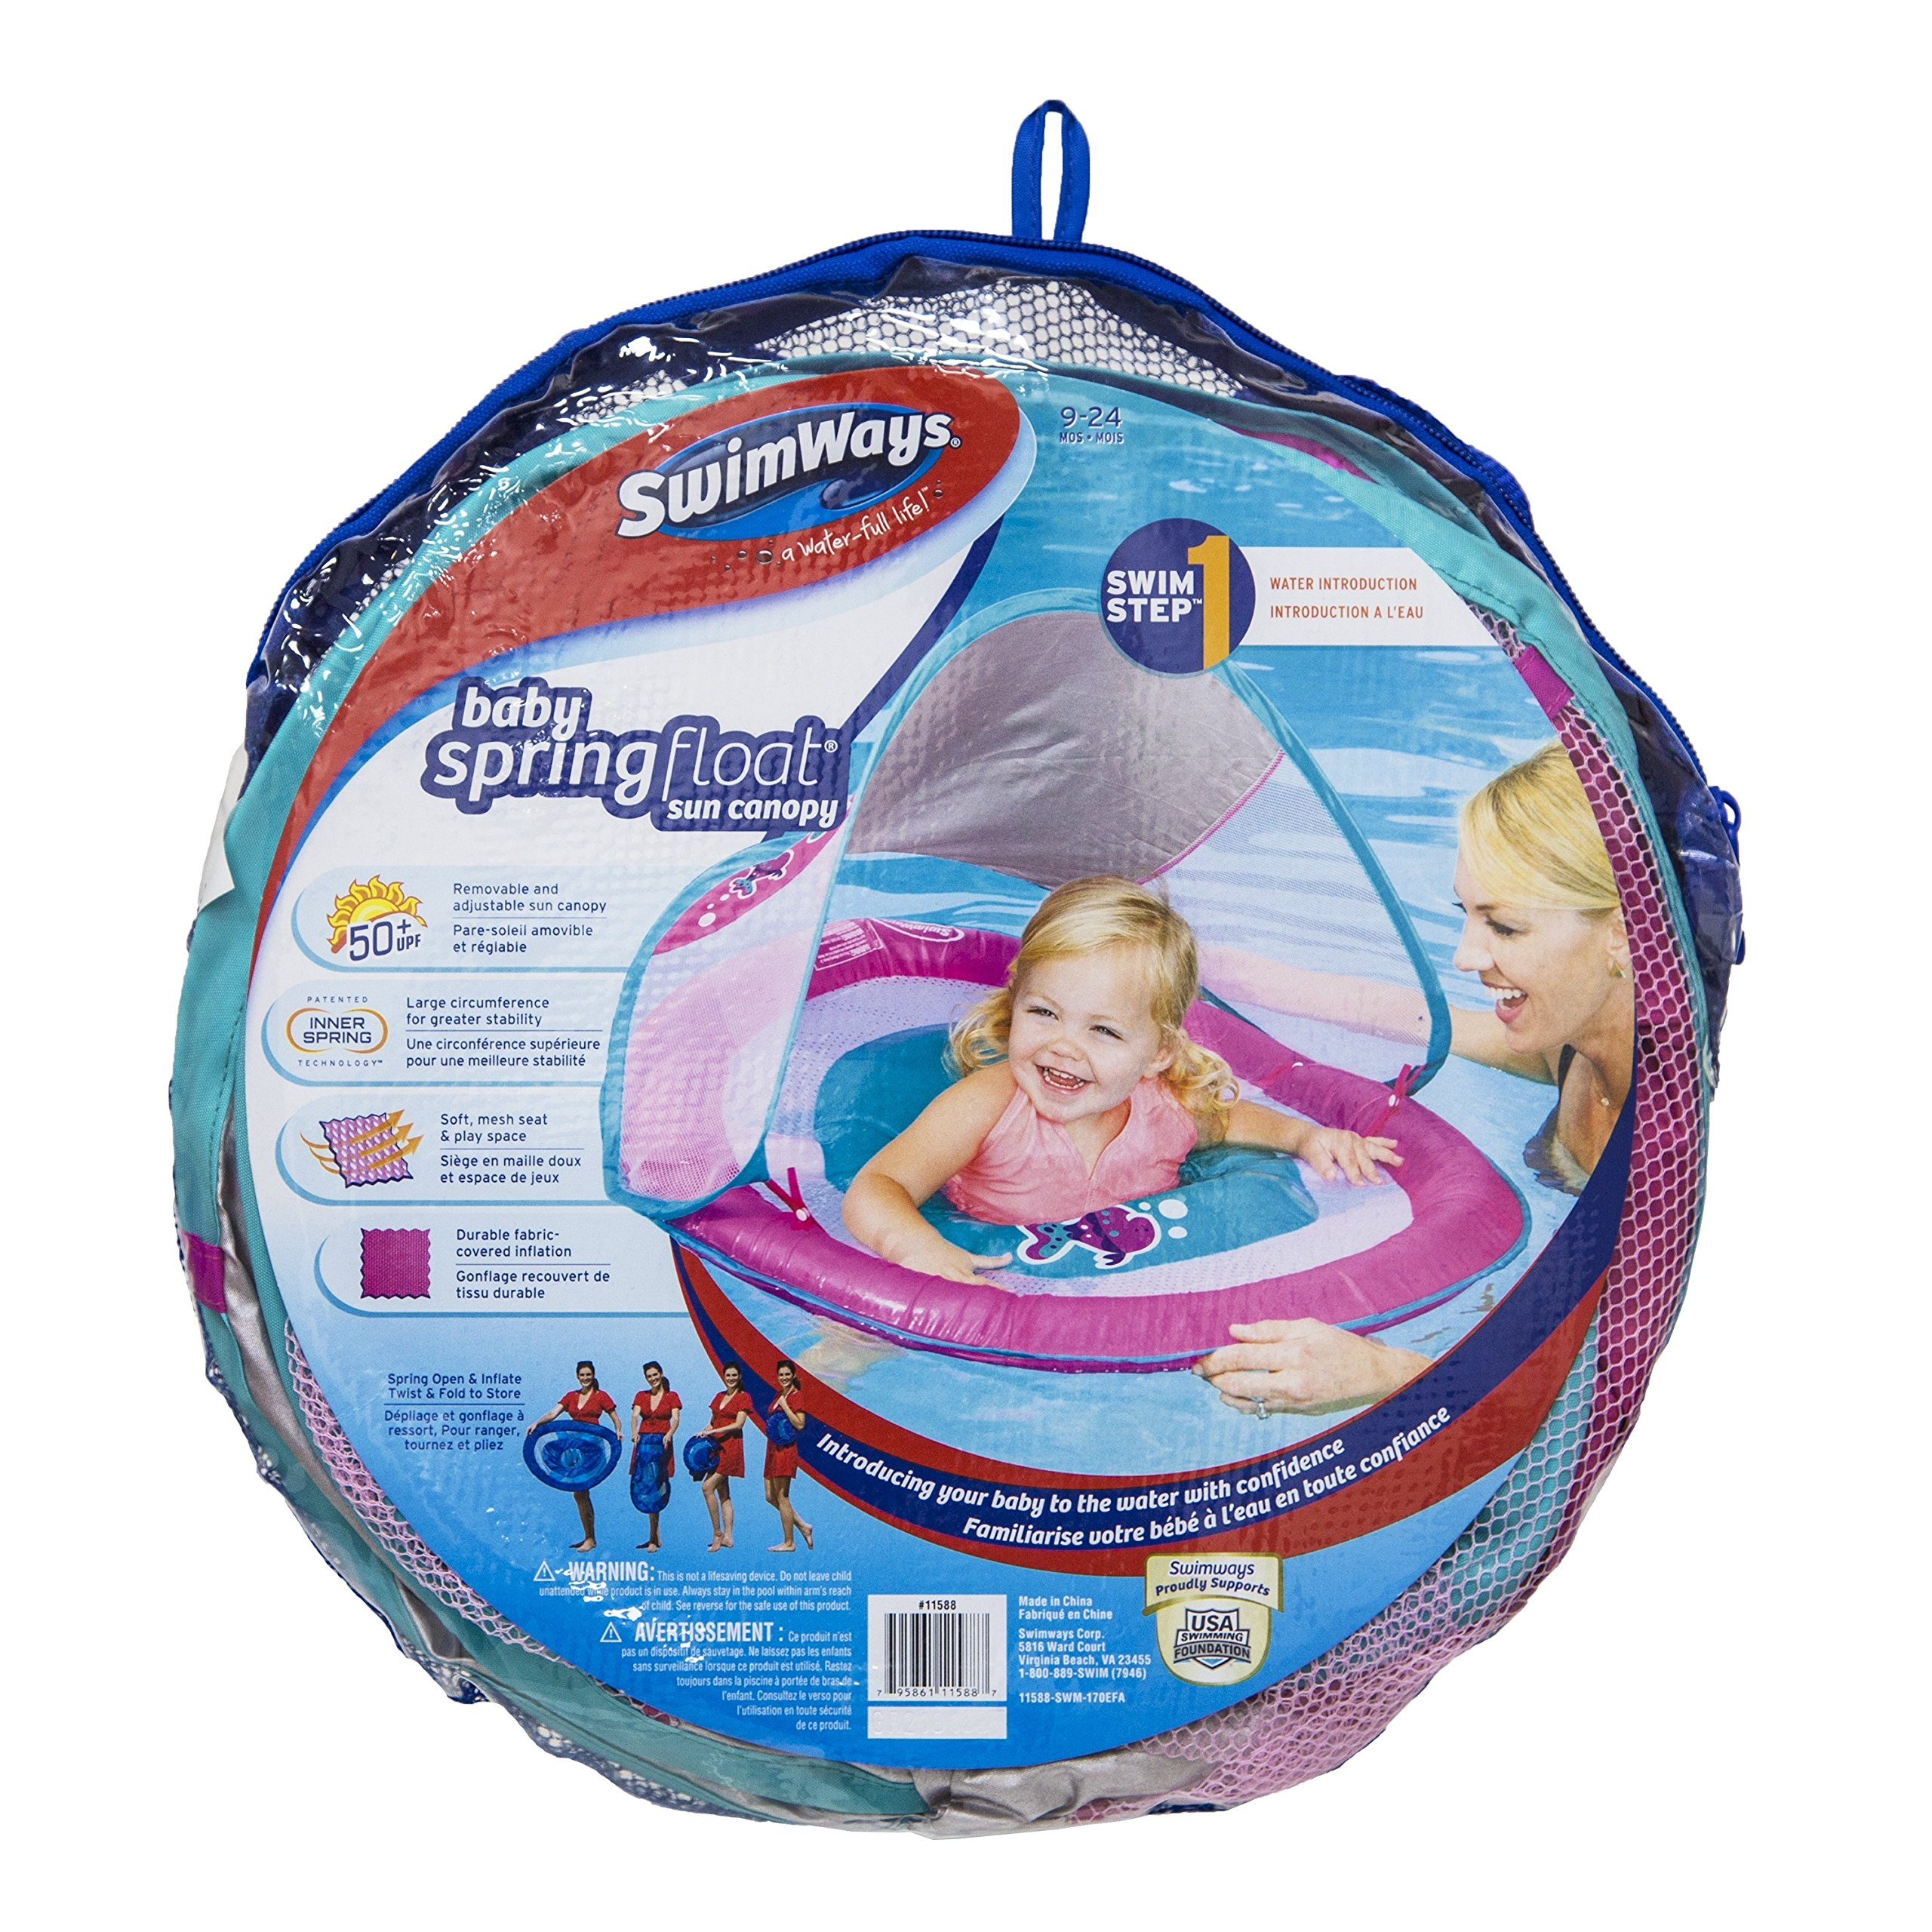 Green Fish SwimWays 11649 Baby Spring Float Activity Center with Sun Canopy